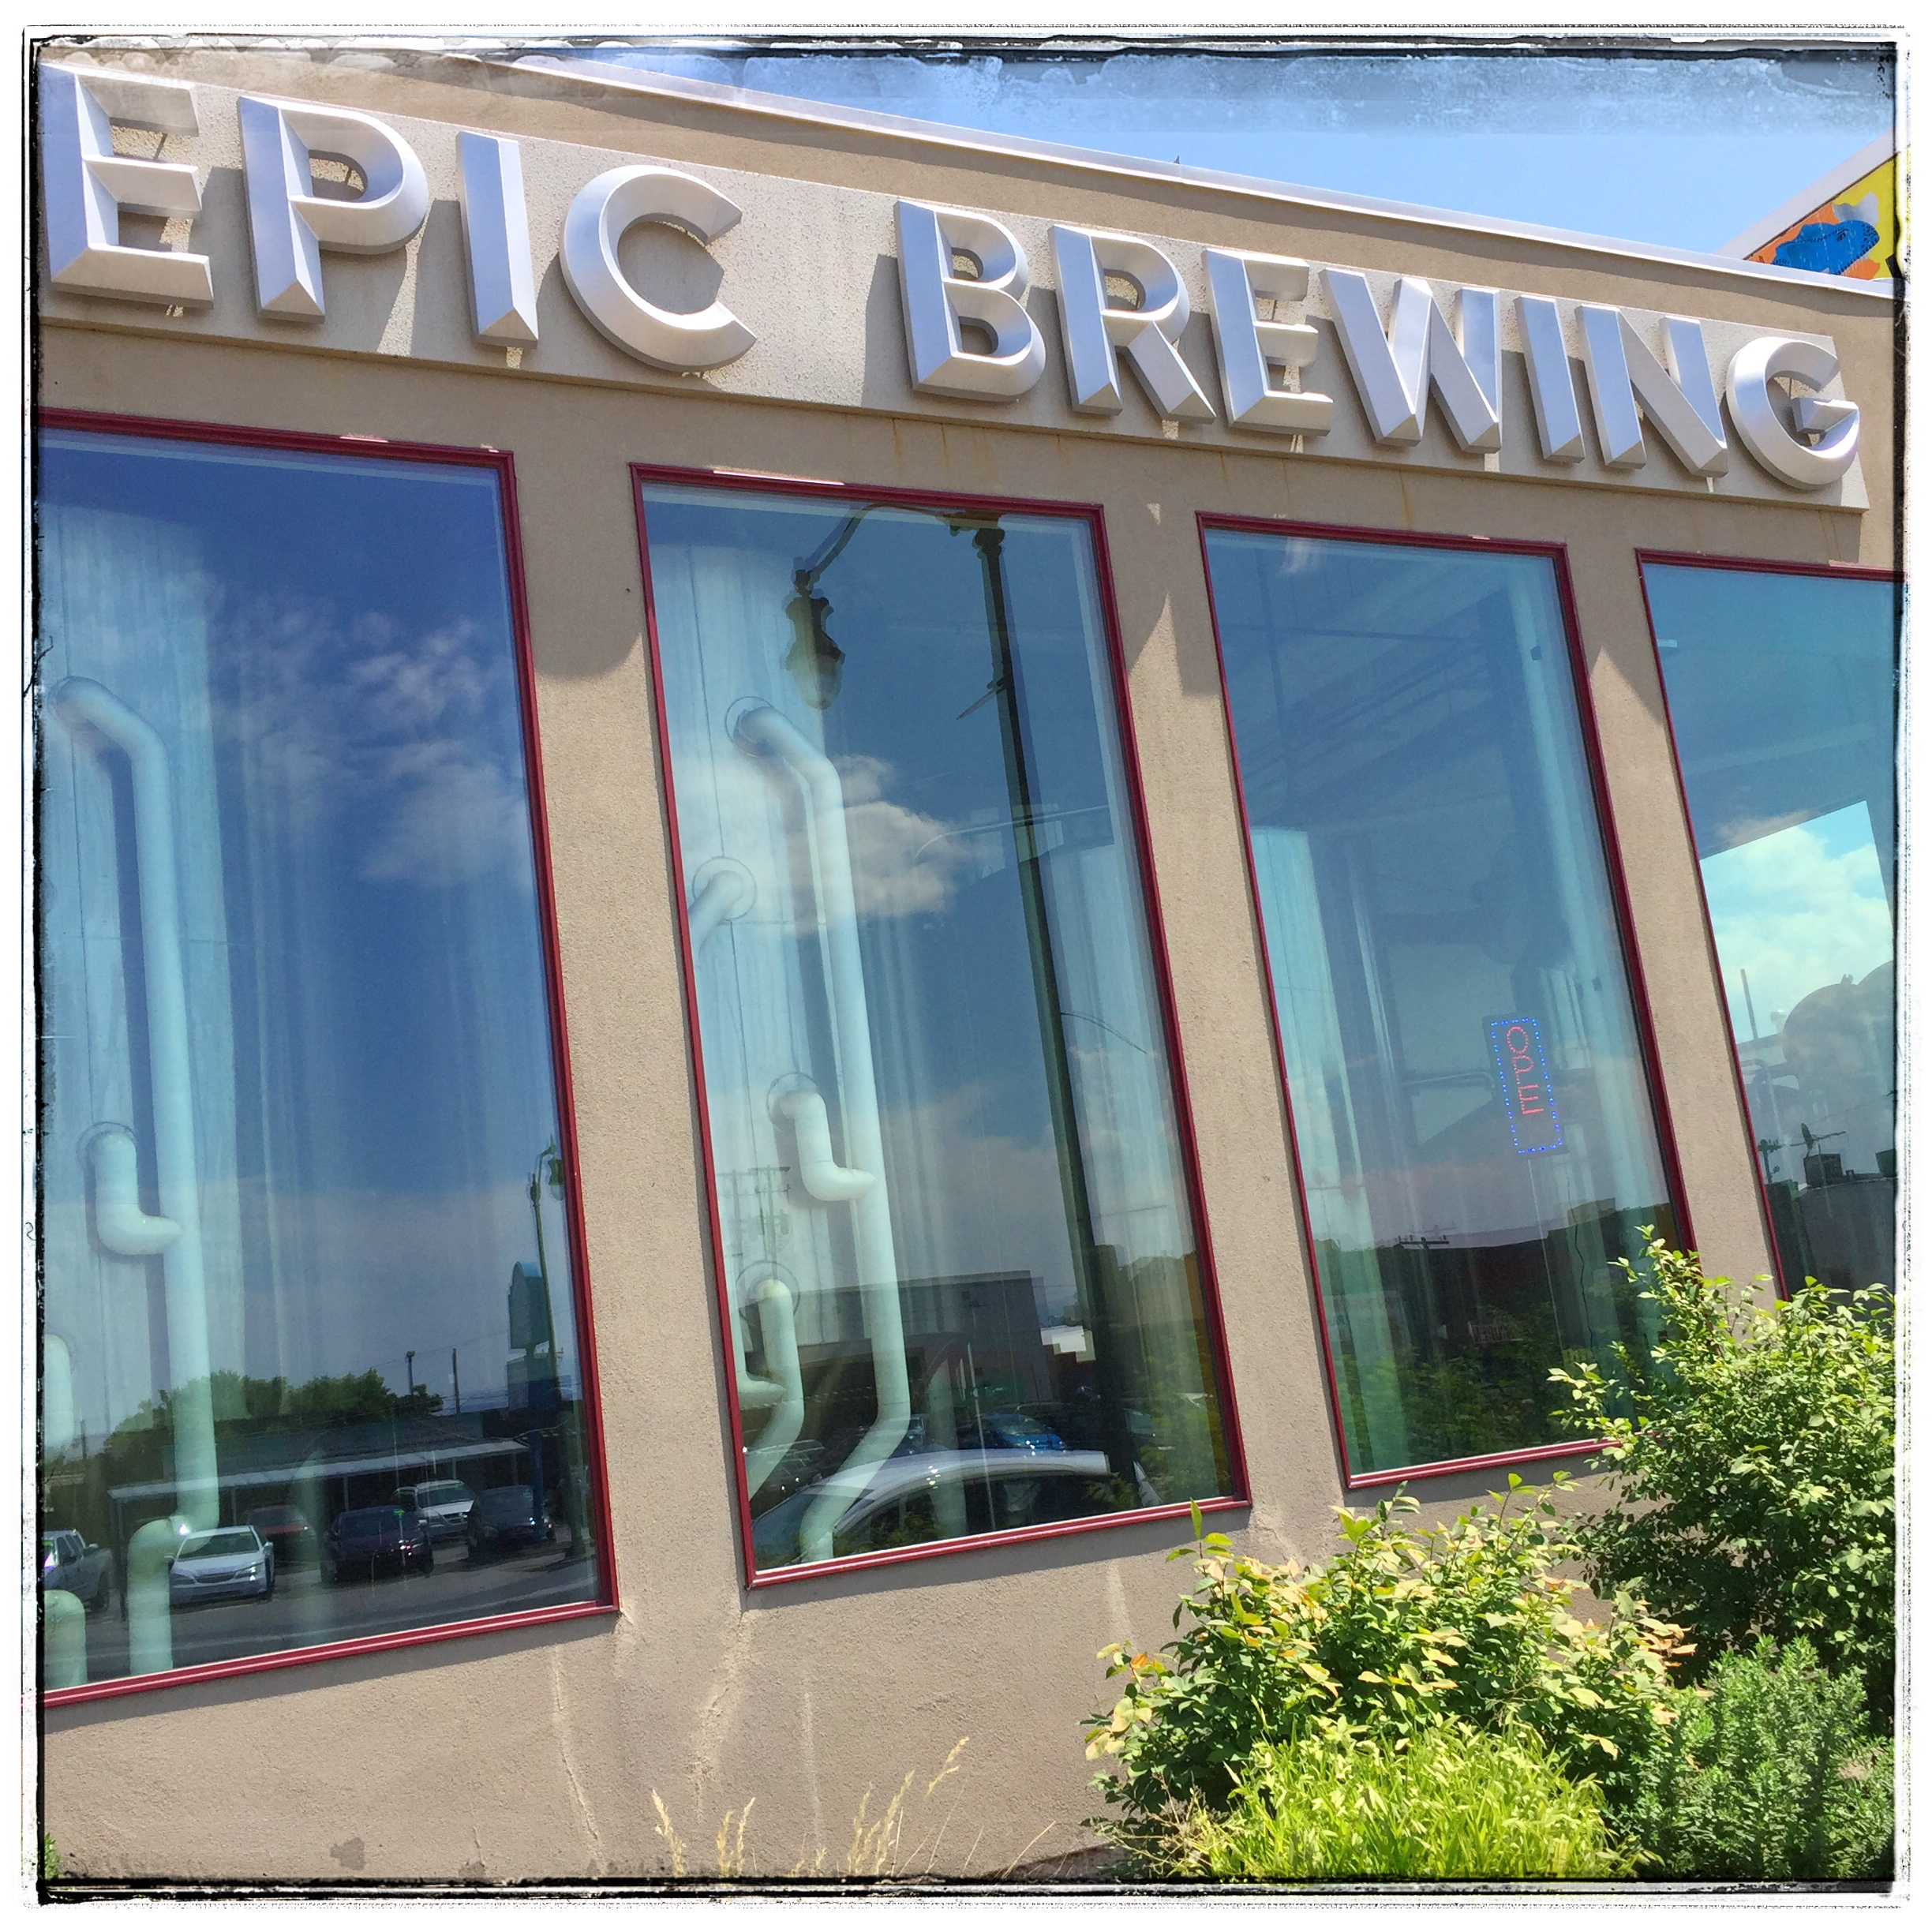 Epic Brewing - Looks at the brewing equipment from the street.